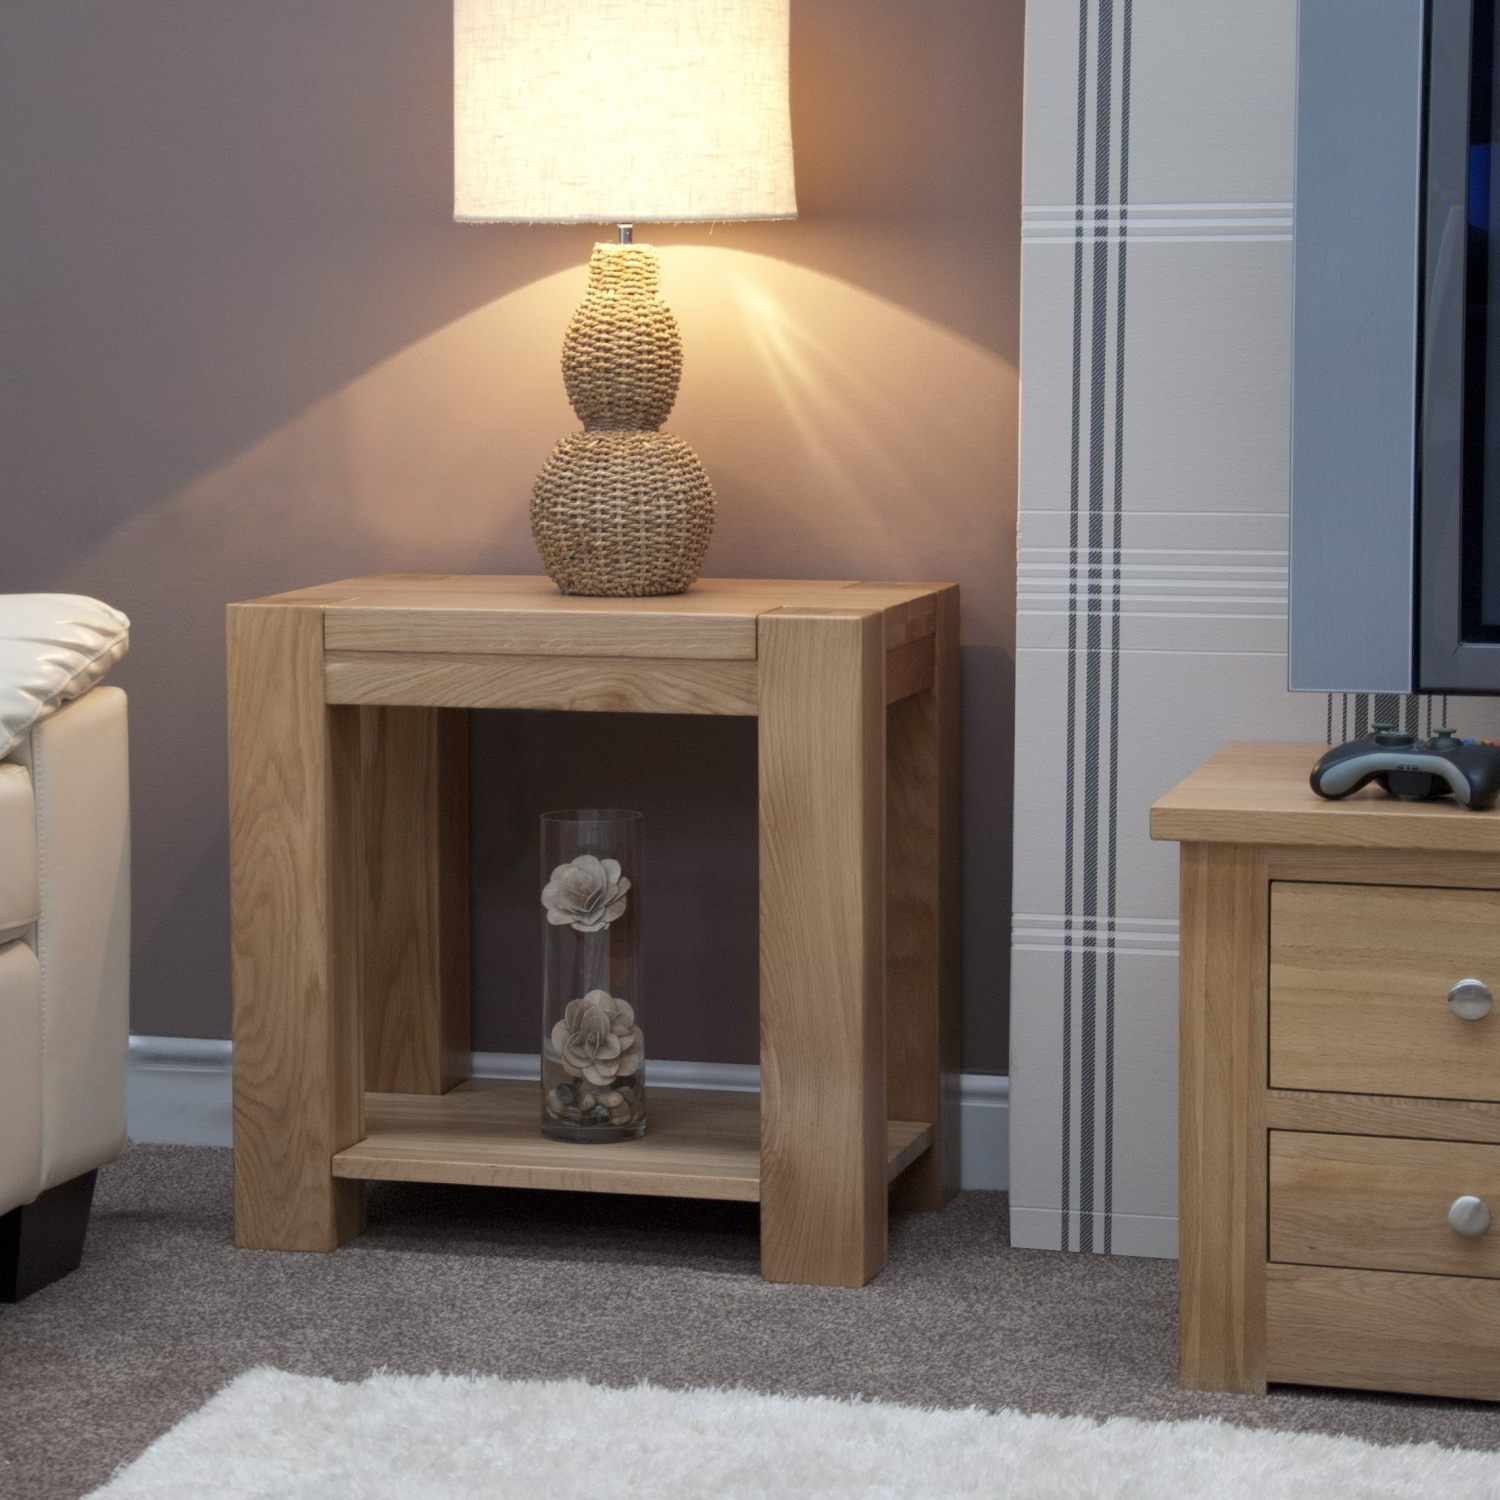 Pemberton solid chunky oak living room furniture lamp sofa for Living room end table lamps